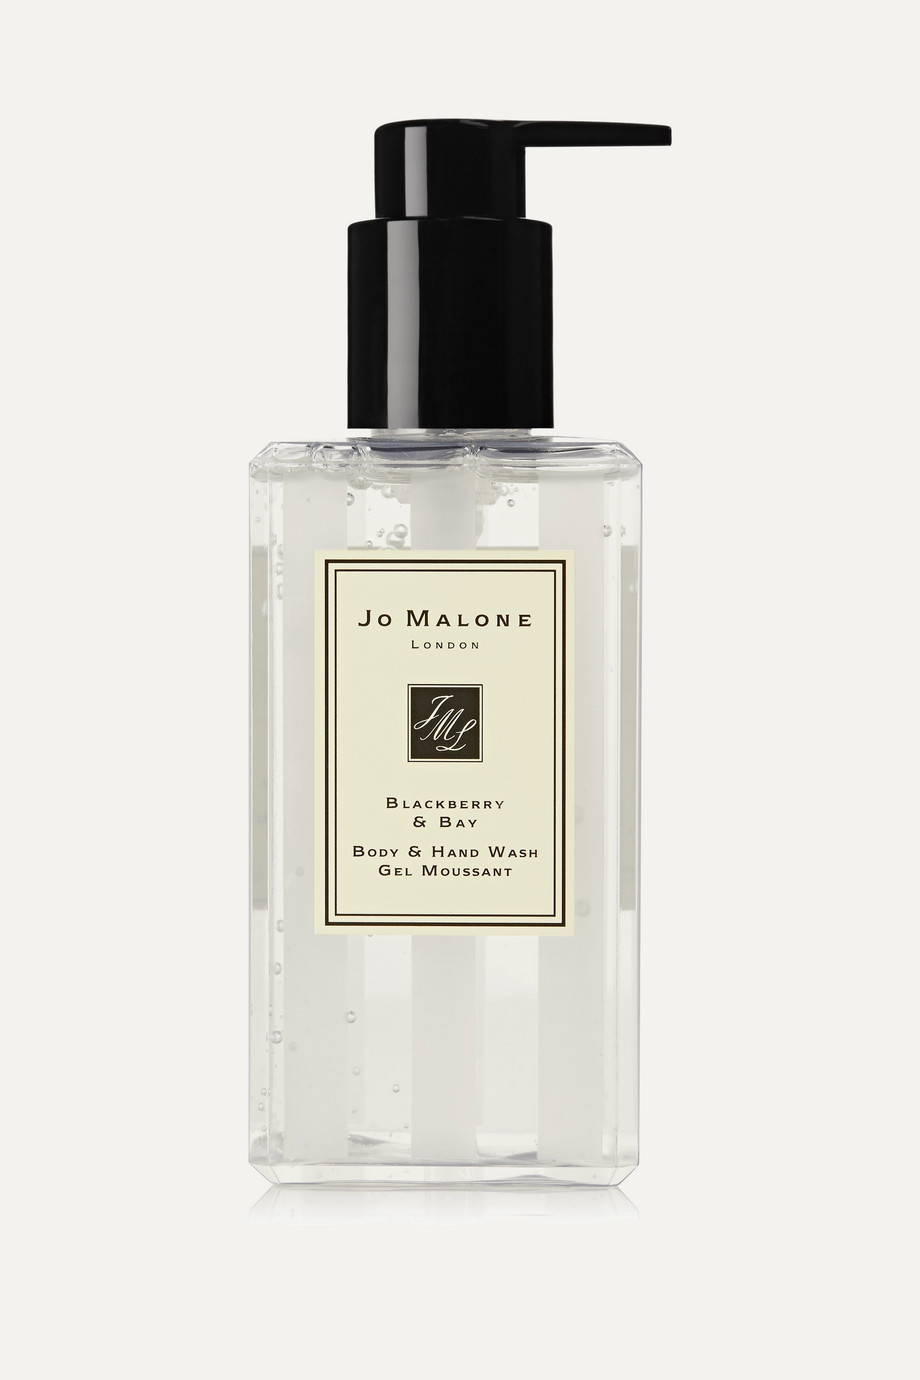 Jo Malone London Blackberry & Bay Body & Hand Wash, 250 ml – Hand- und Bodylotion